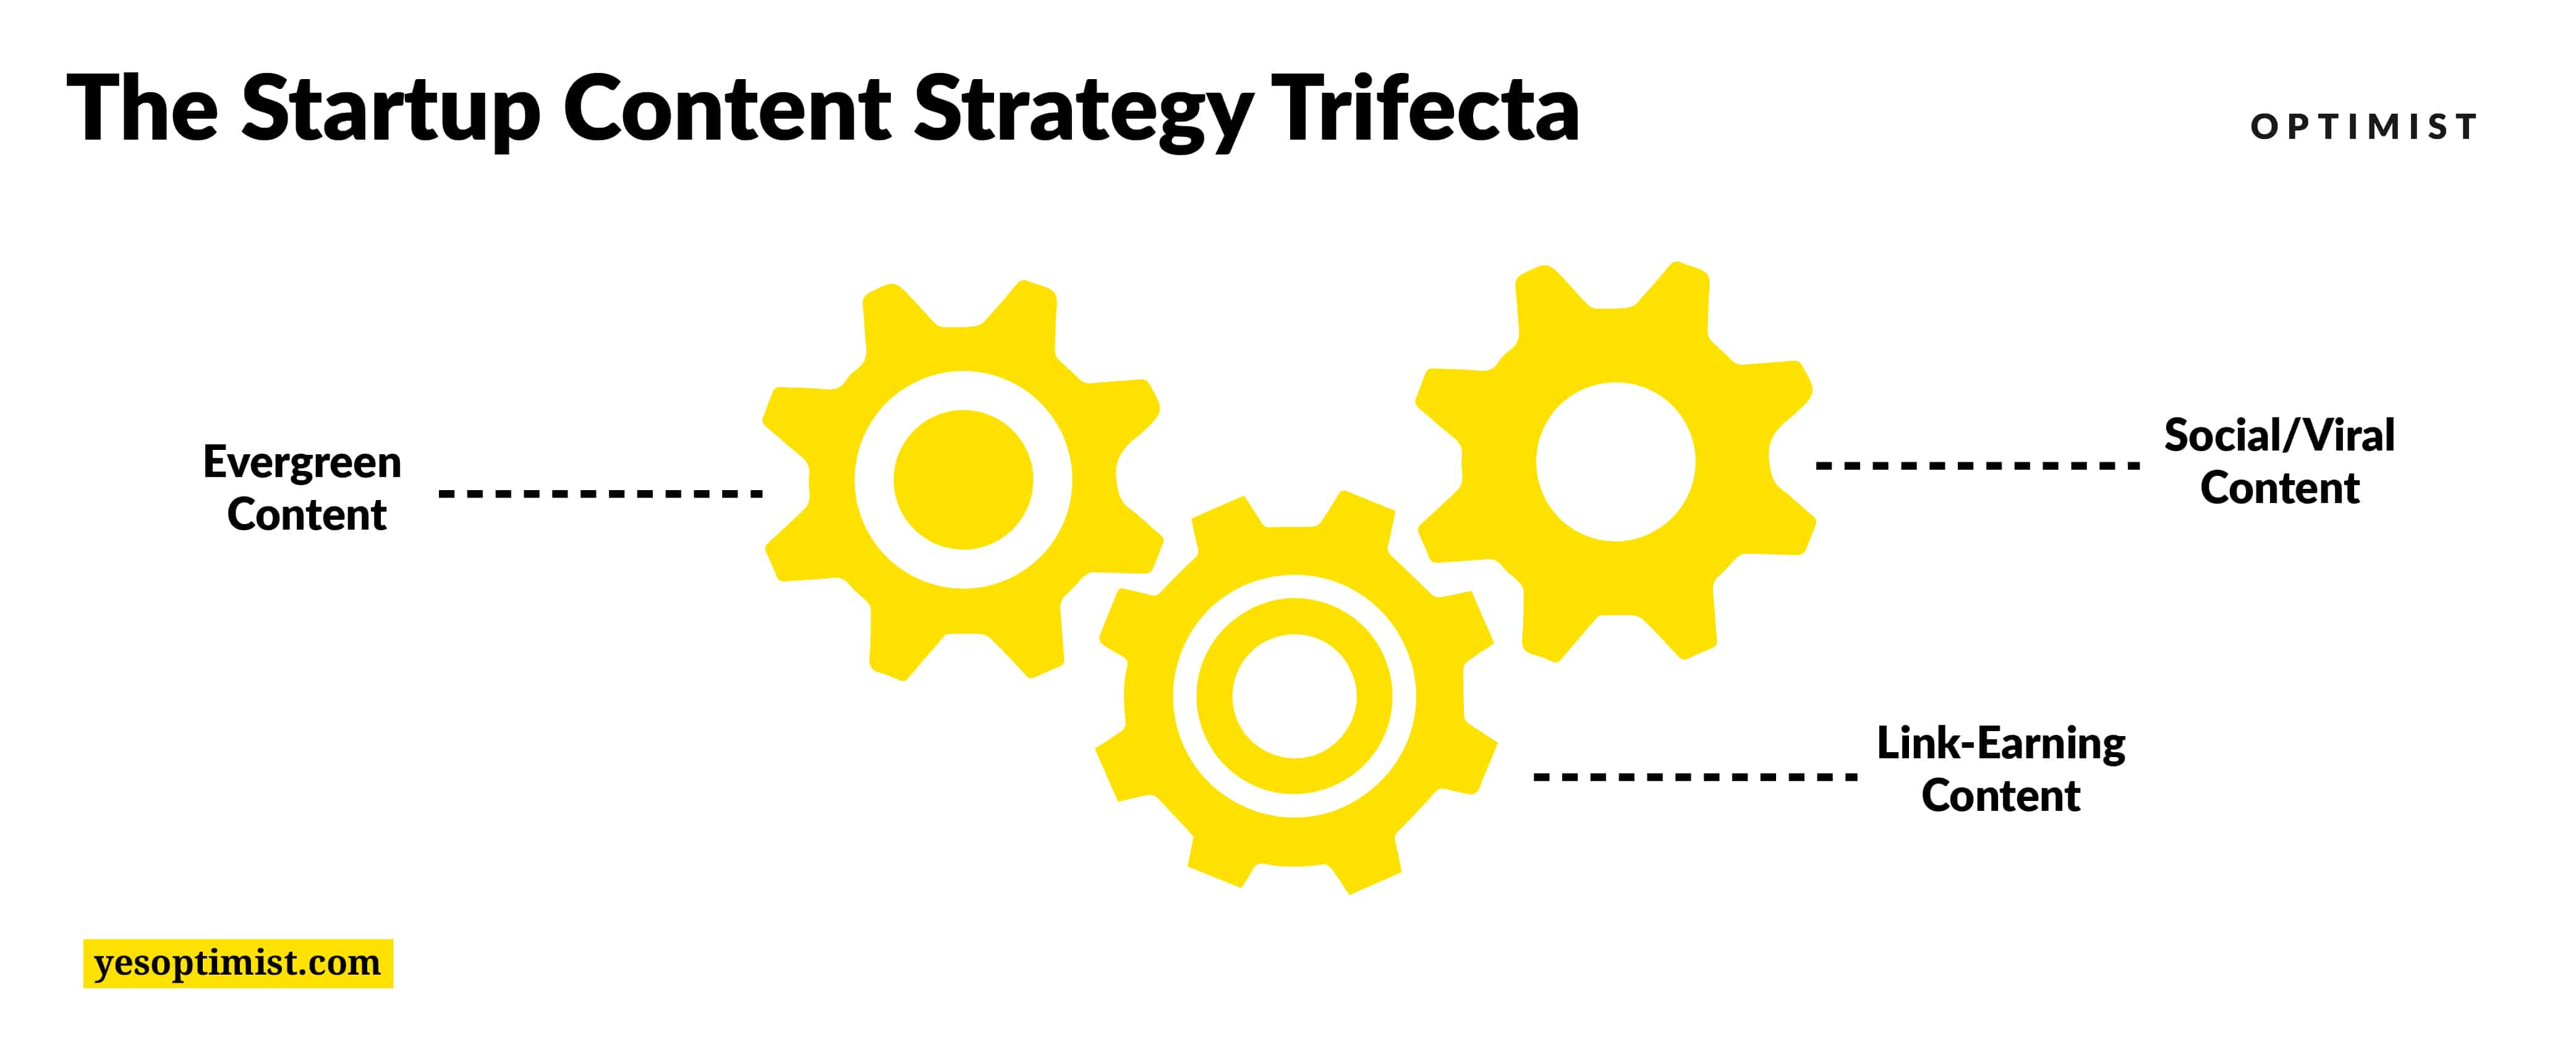 """The Optimist """"Trifecta"""" strategy for startup content marketing includes 3 types of content: Evergreen, social-viral, and linkbuilding."""